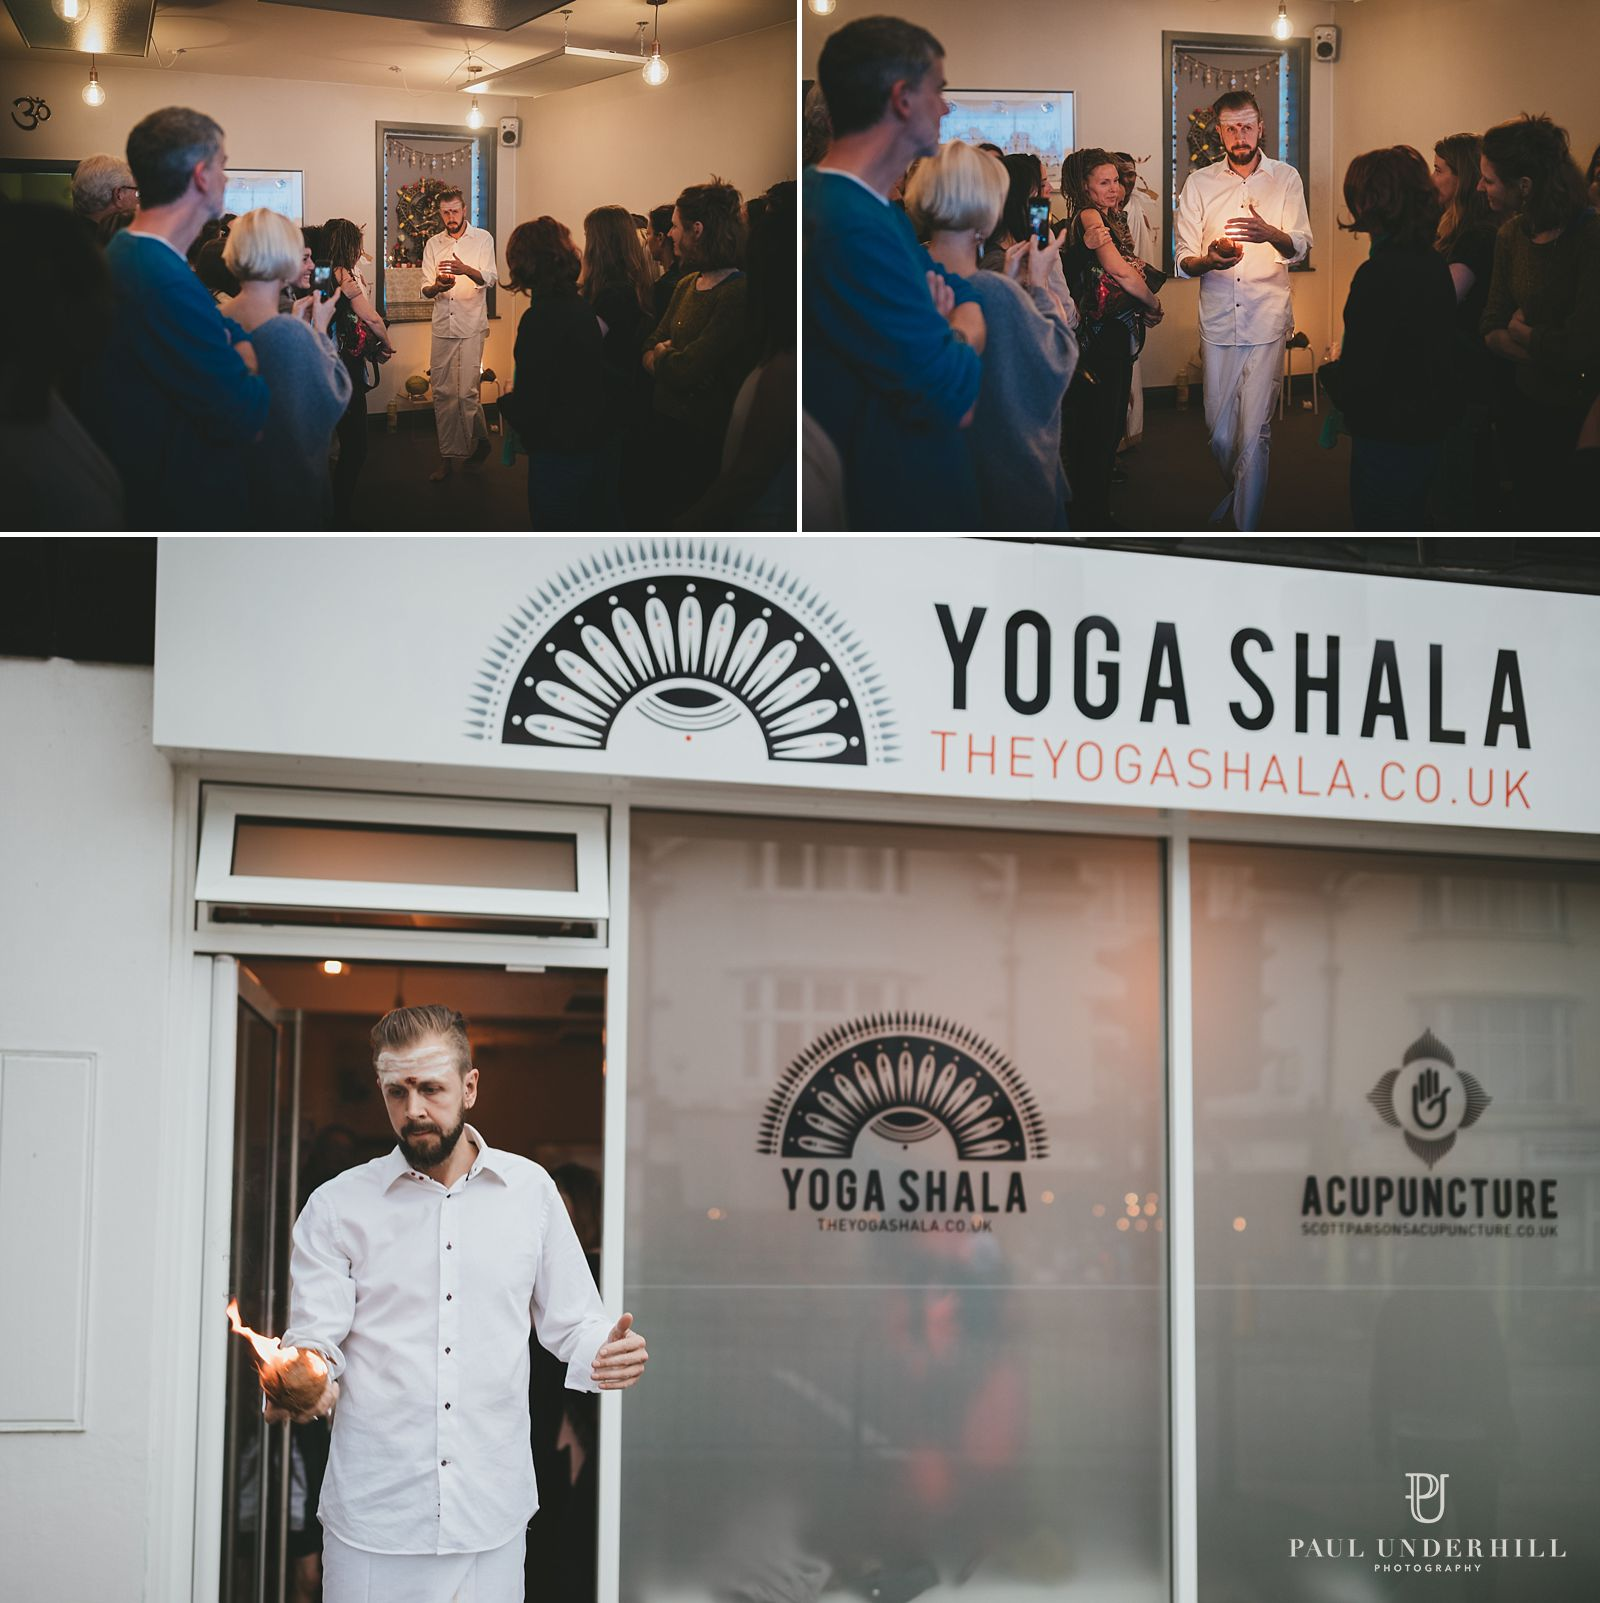 Photography of Yoga Shala event